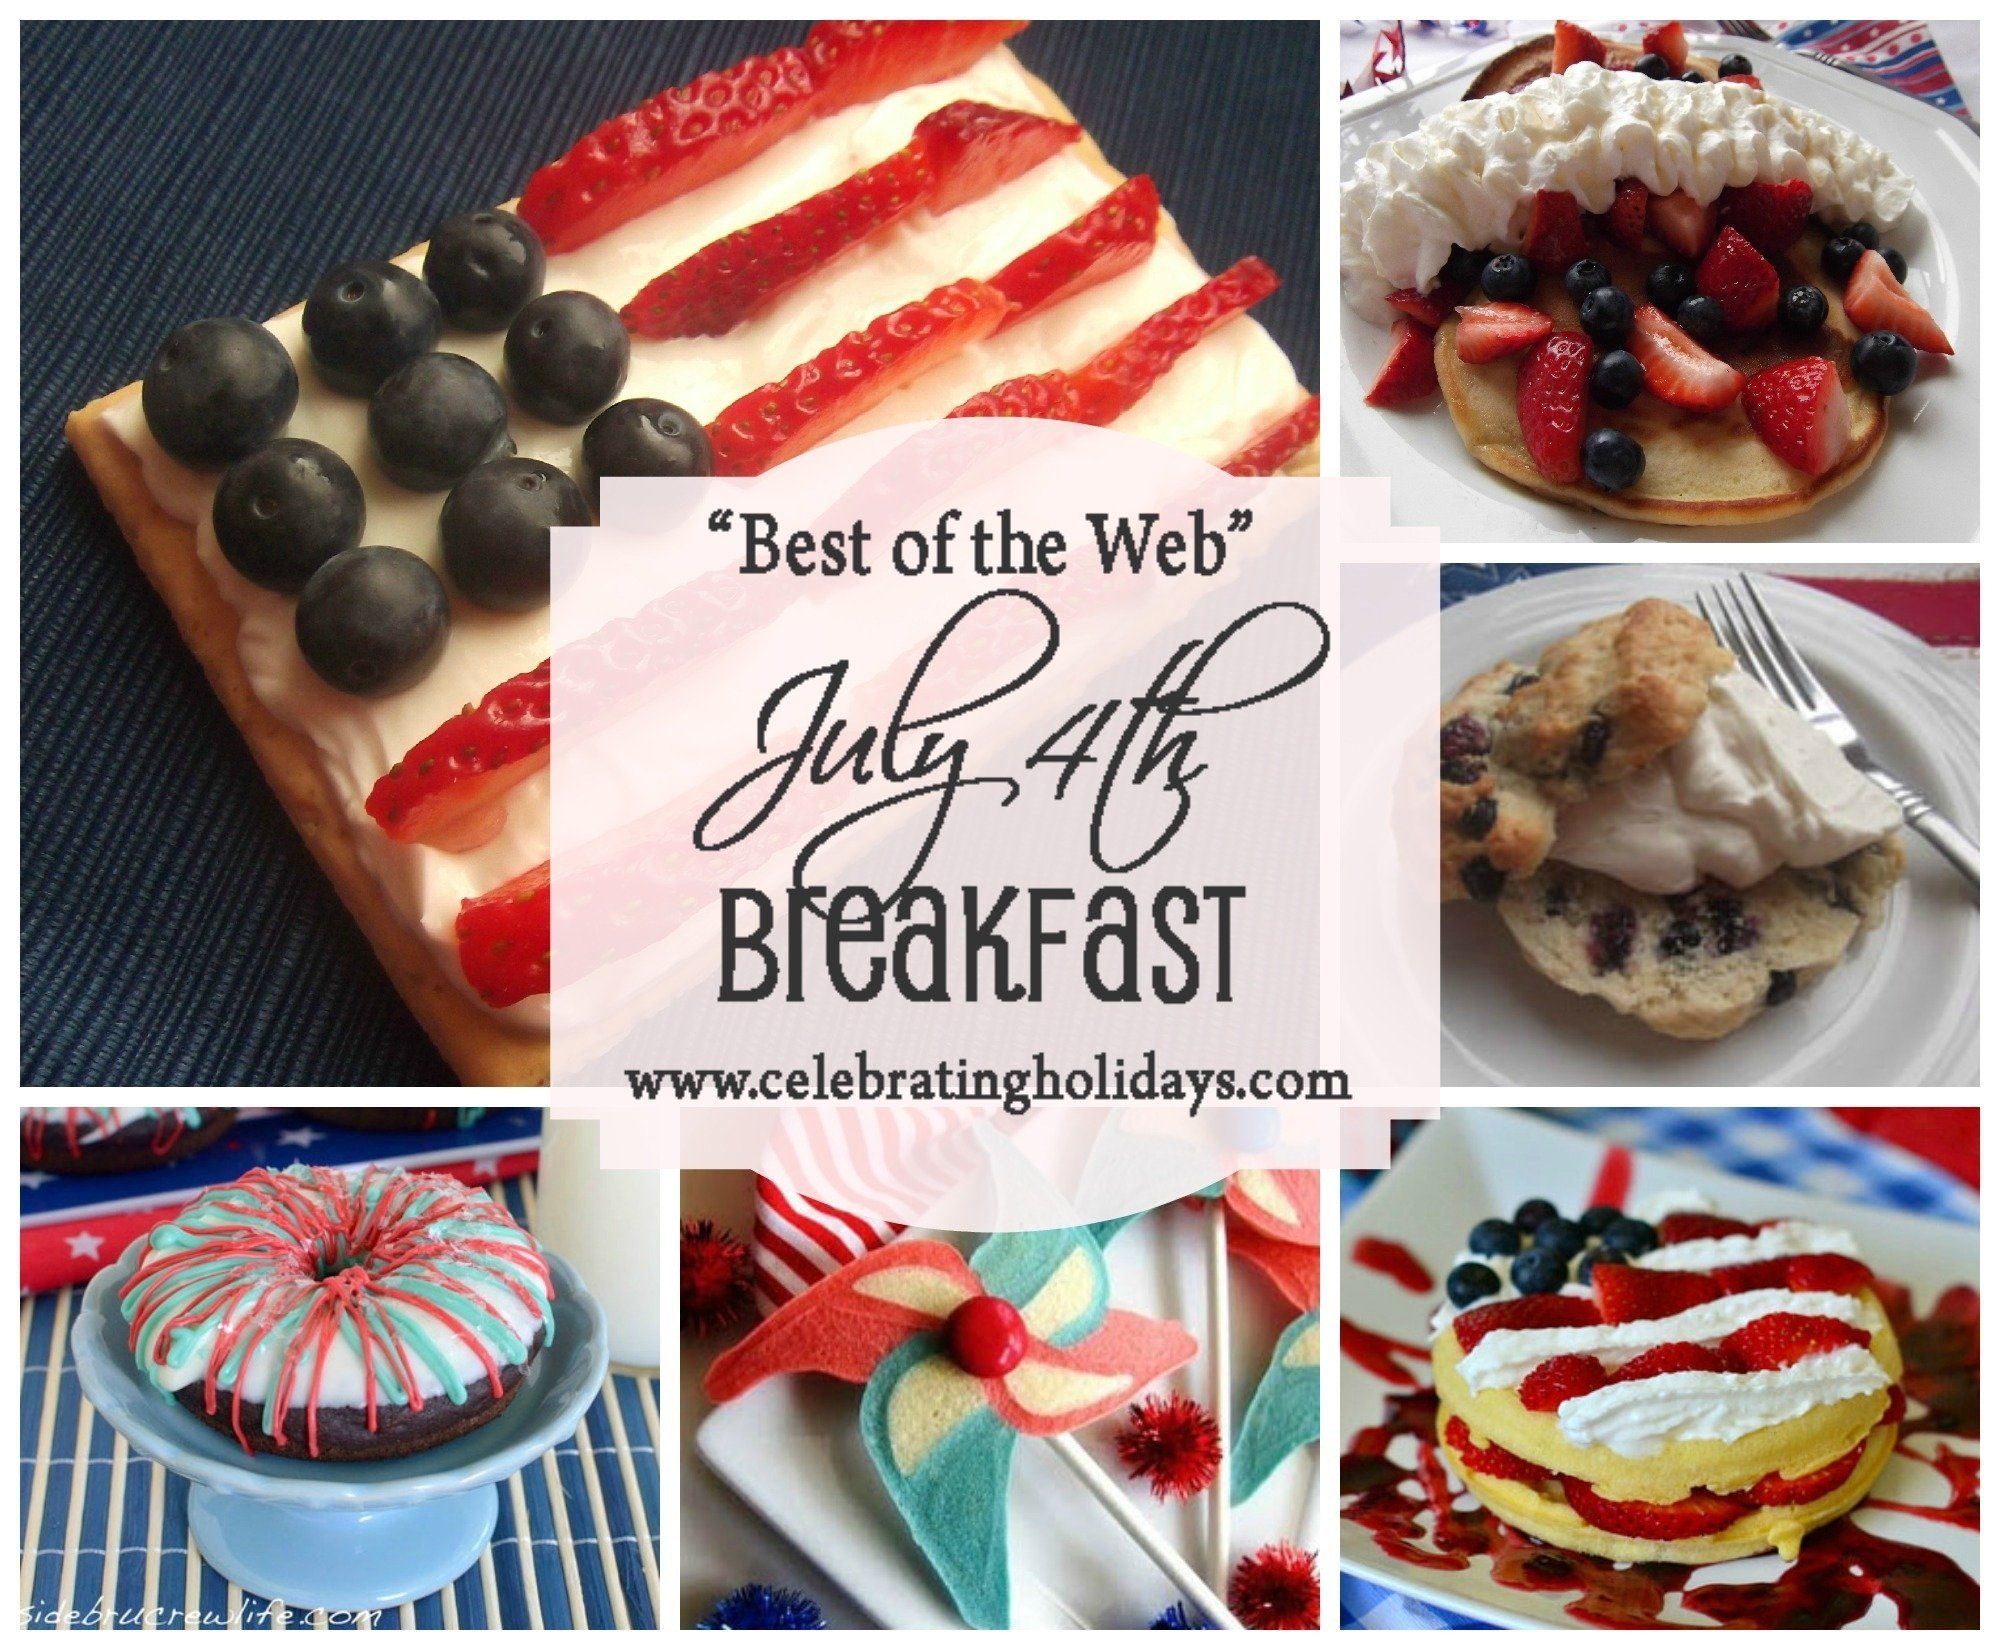 10 Lovely 4Th Of July Meal Ideas july 4th breakfast ideas and recipes celebrating holidays